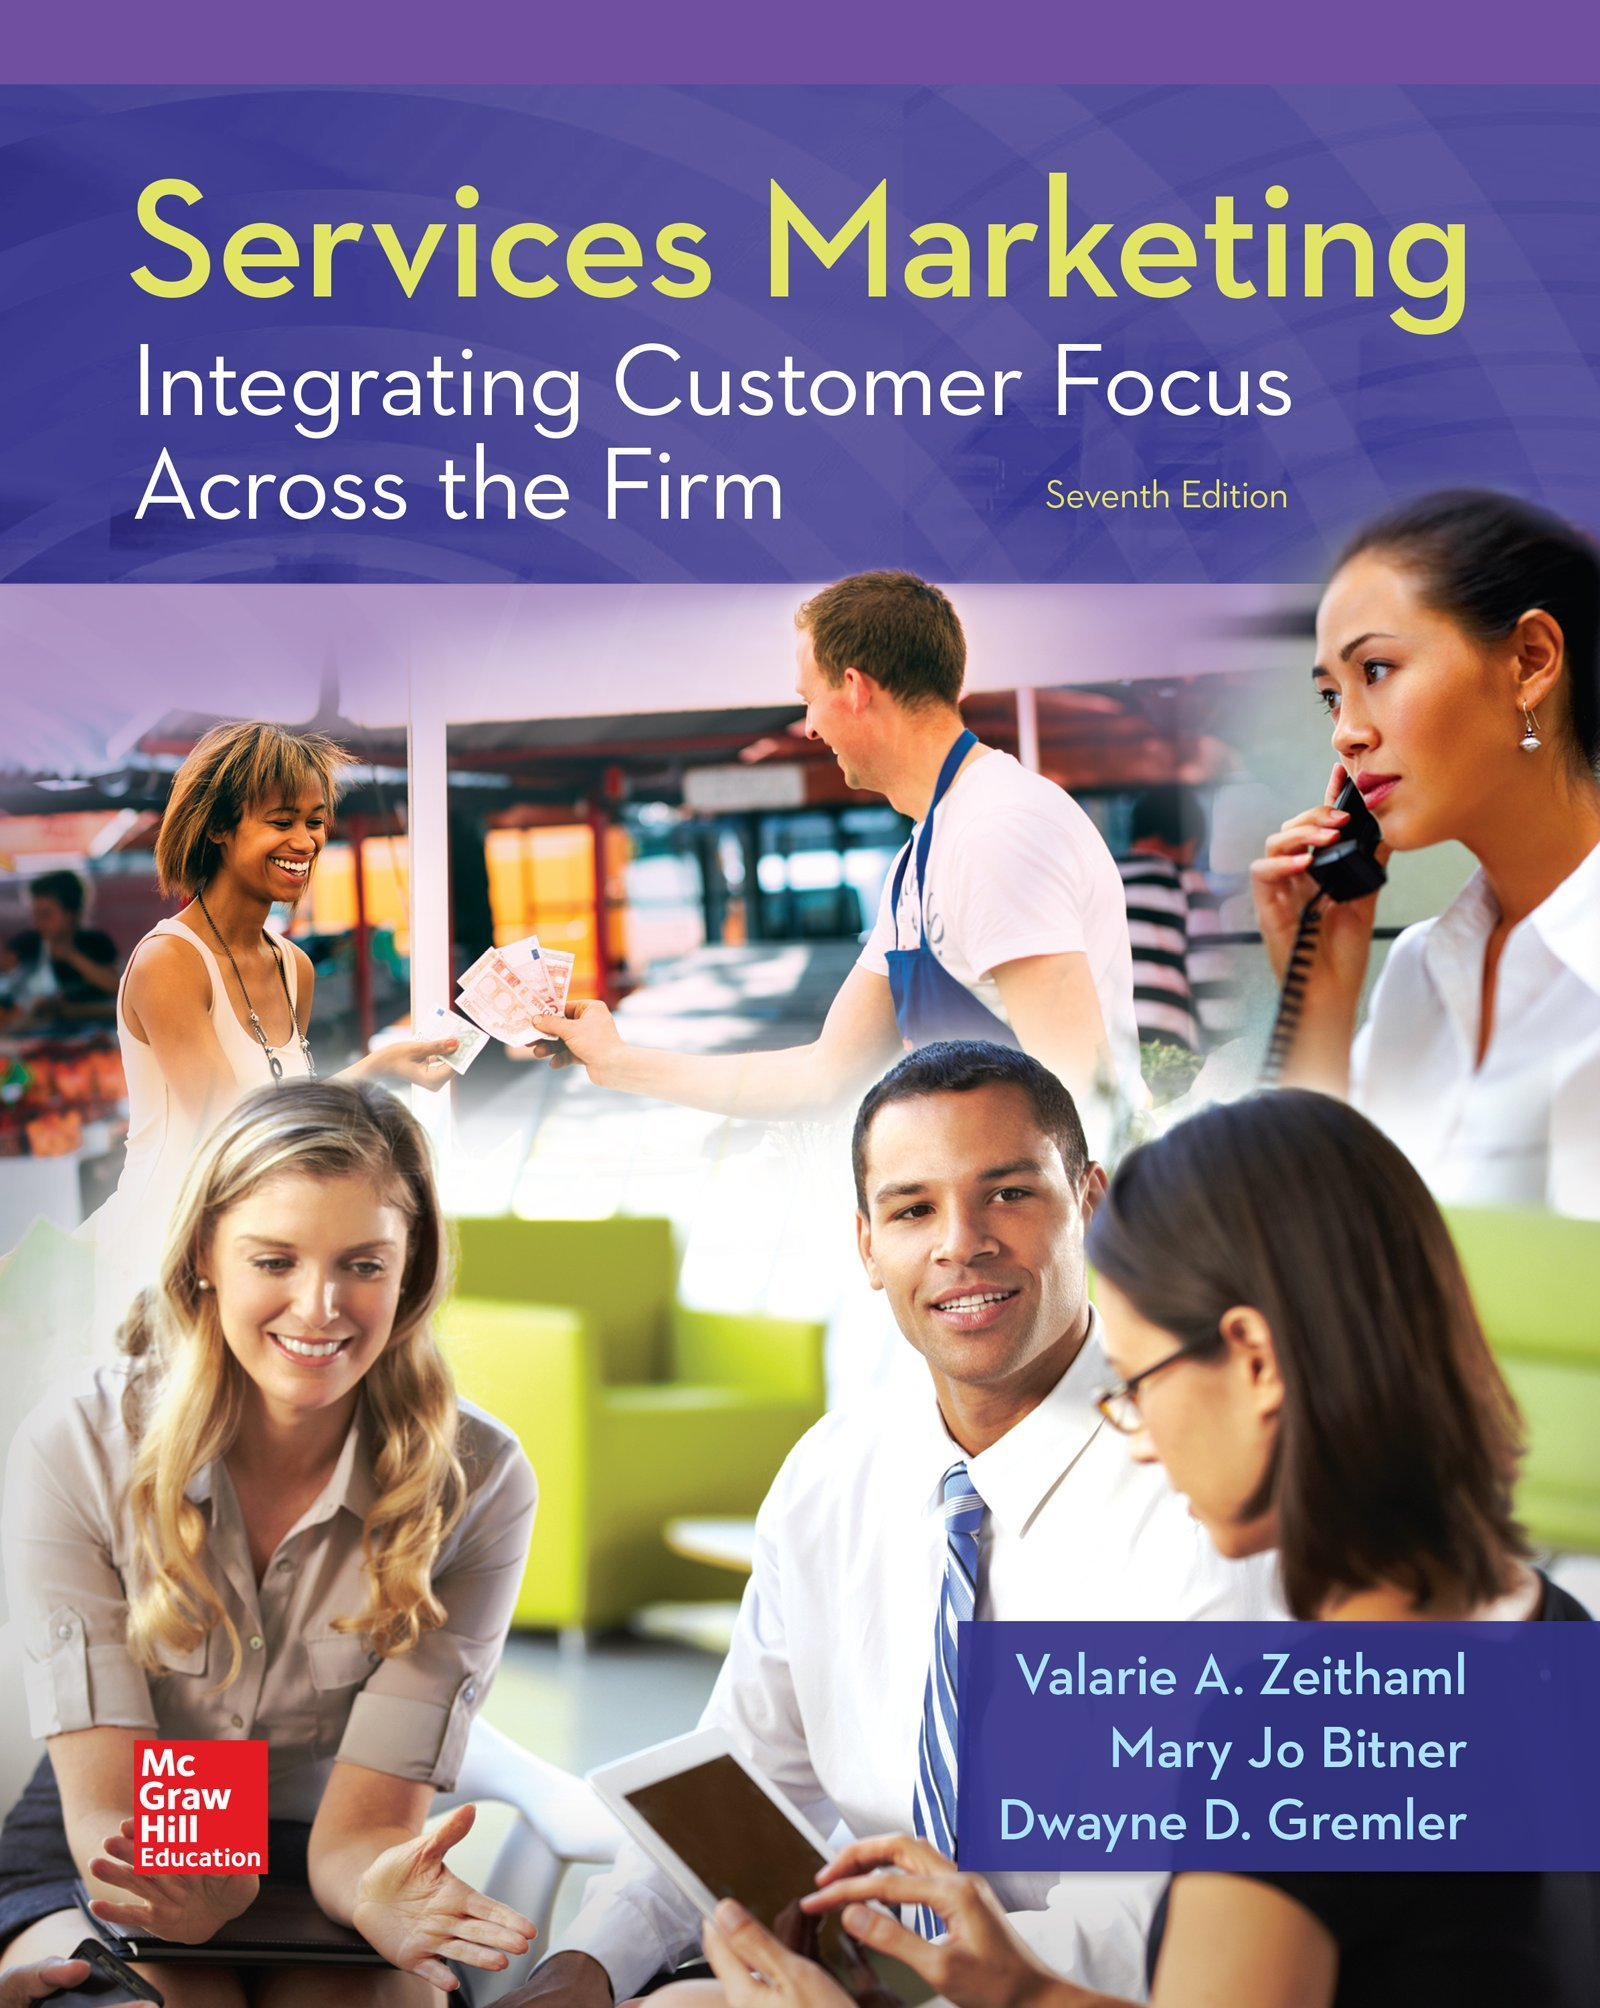 Services Marketing: Integrating Customer Focus Across the Firm by McGraw-Hill Education